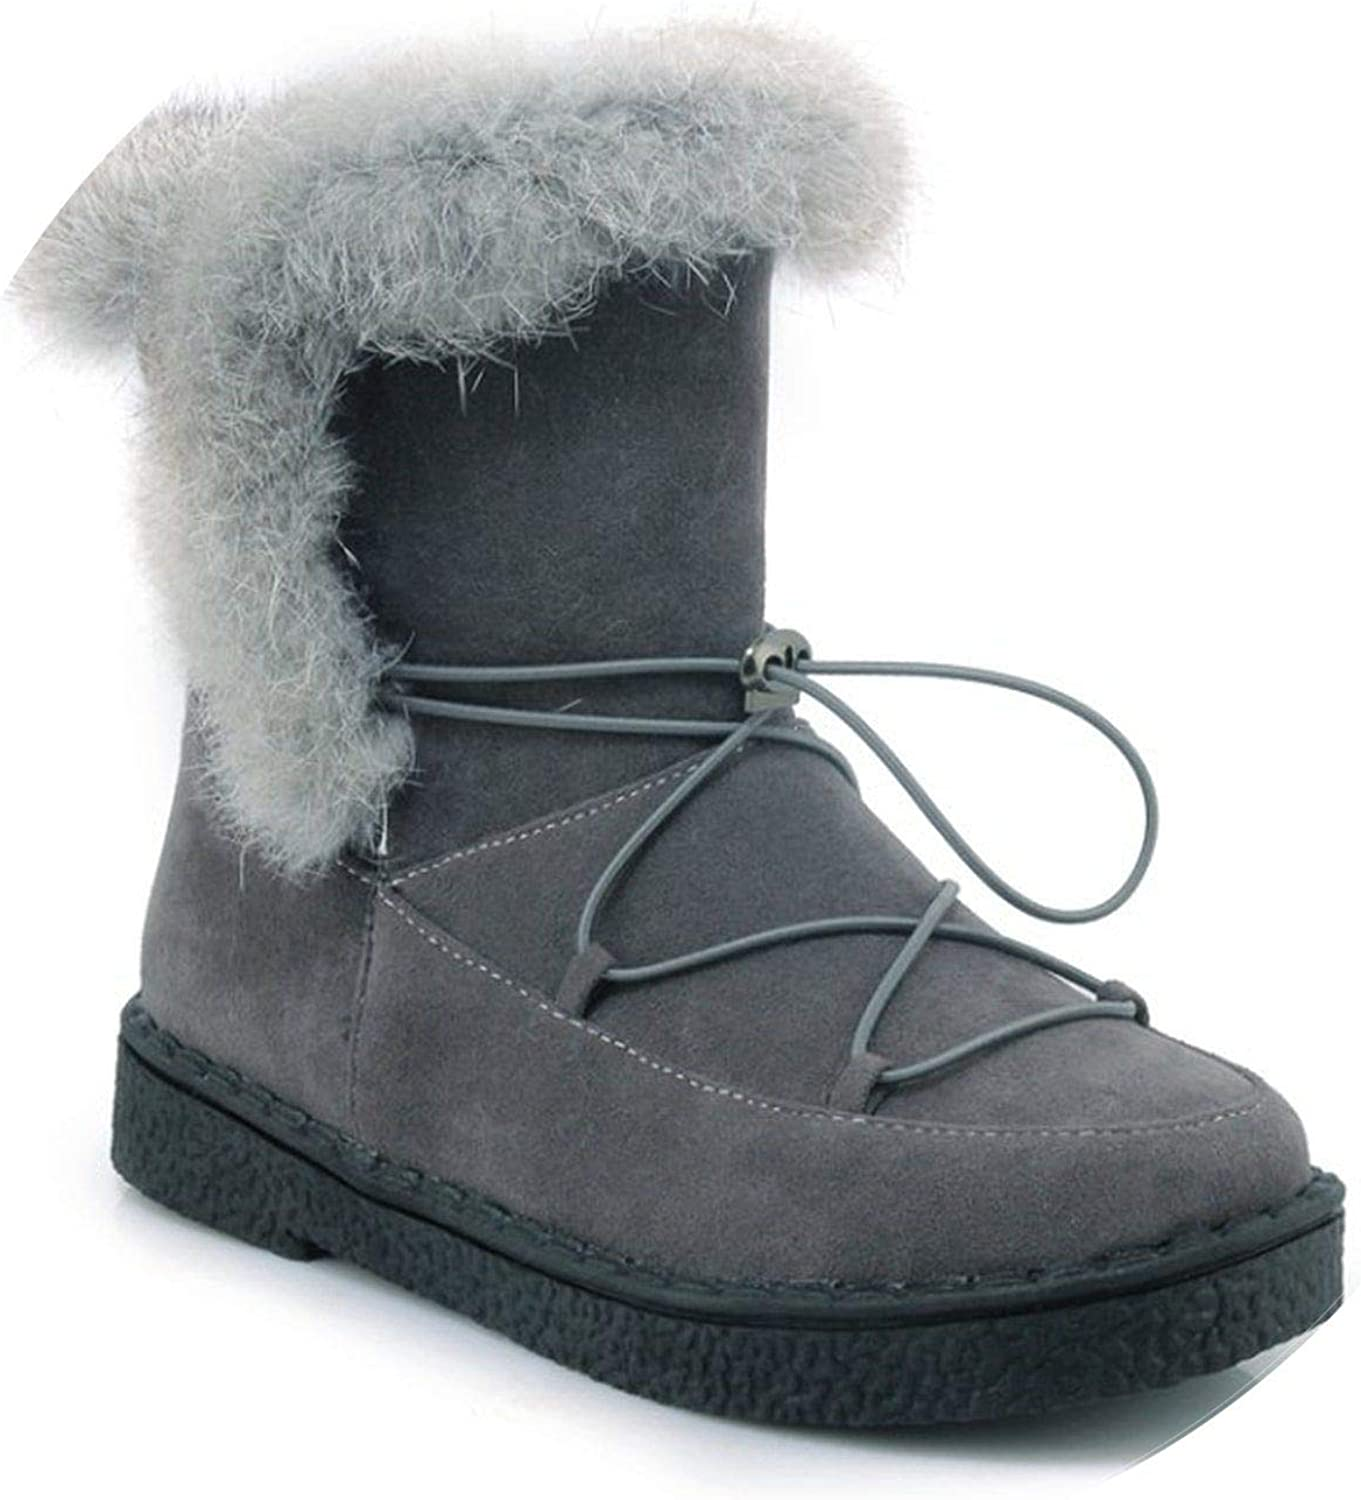 Summer-lavender Warm Snow Boots Real Flat Winter Boots Arrival Women Ankle Boots Warm Fur Plush shoes